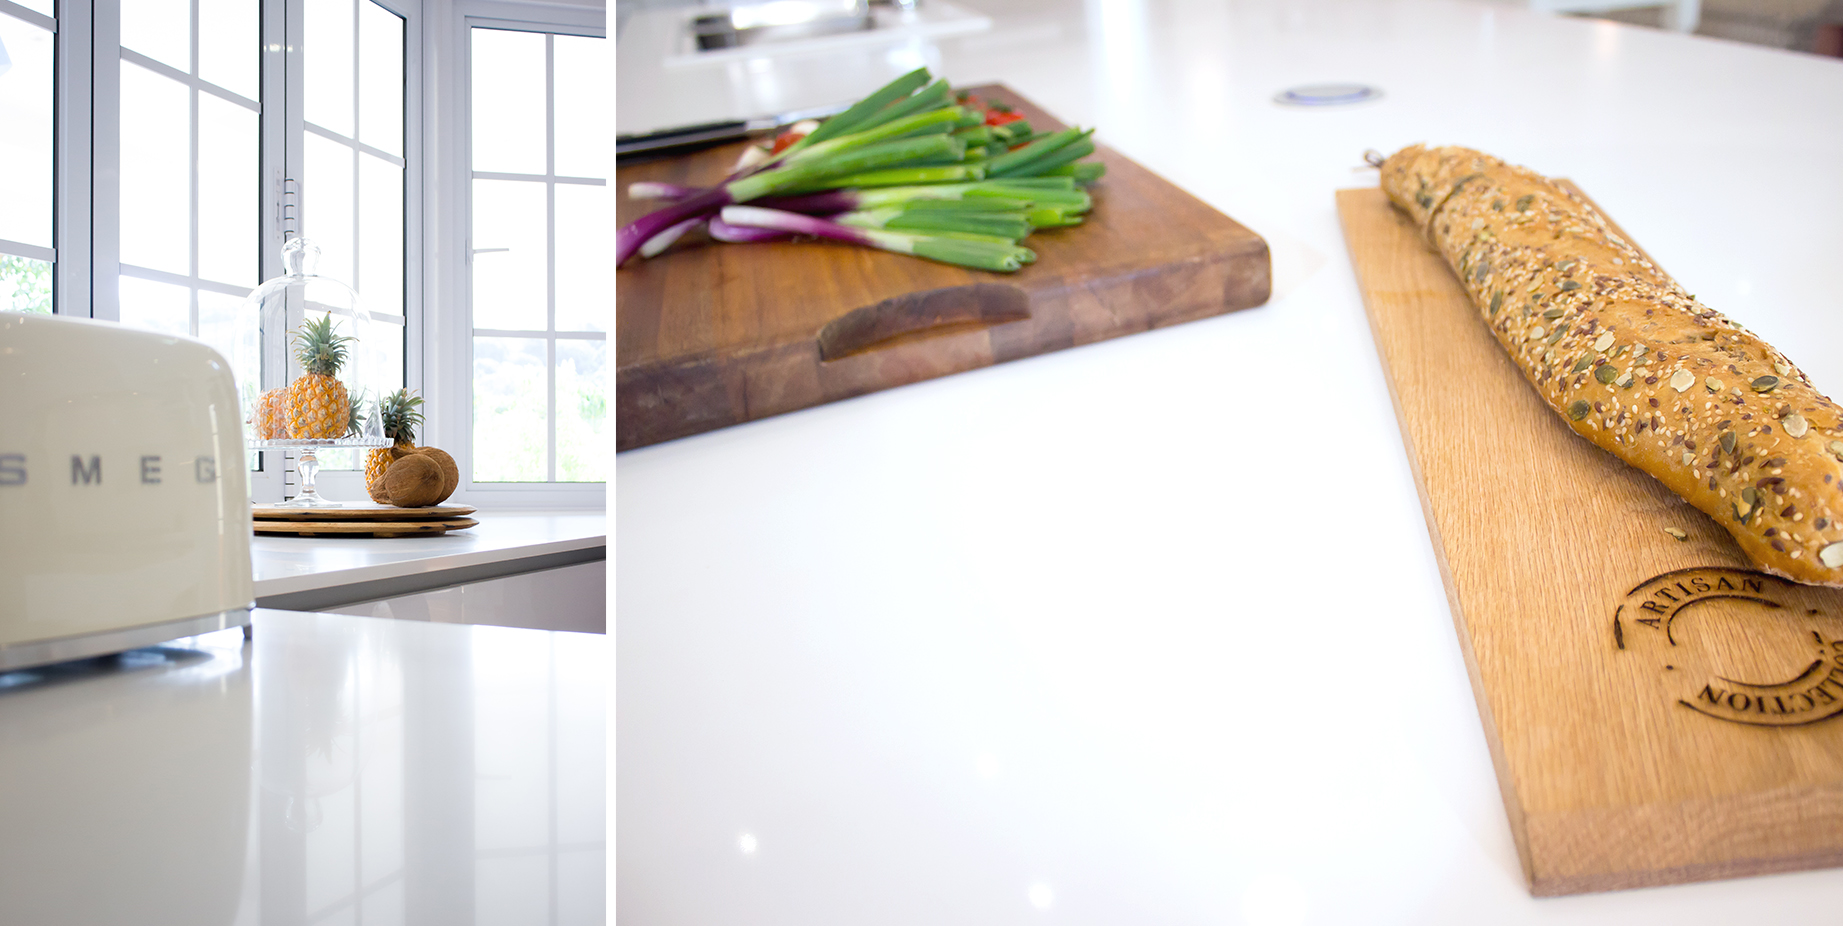 Pristine Pure White Caesarstone quartz surfaces provide the perfect countertops for durability and aesthetic appeal.